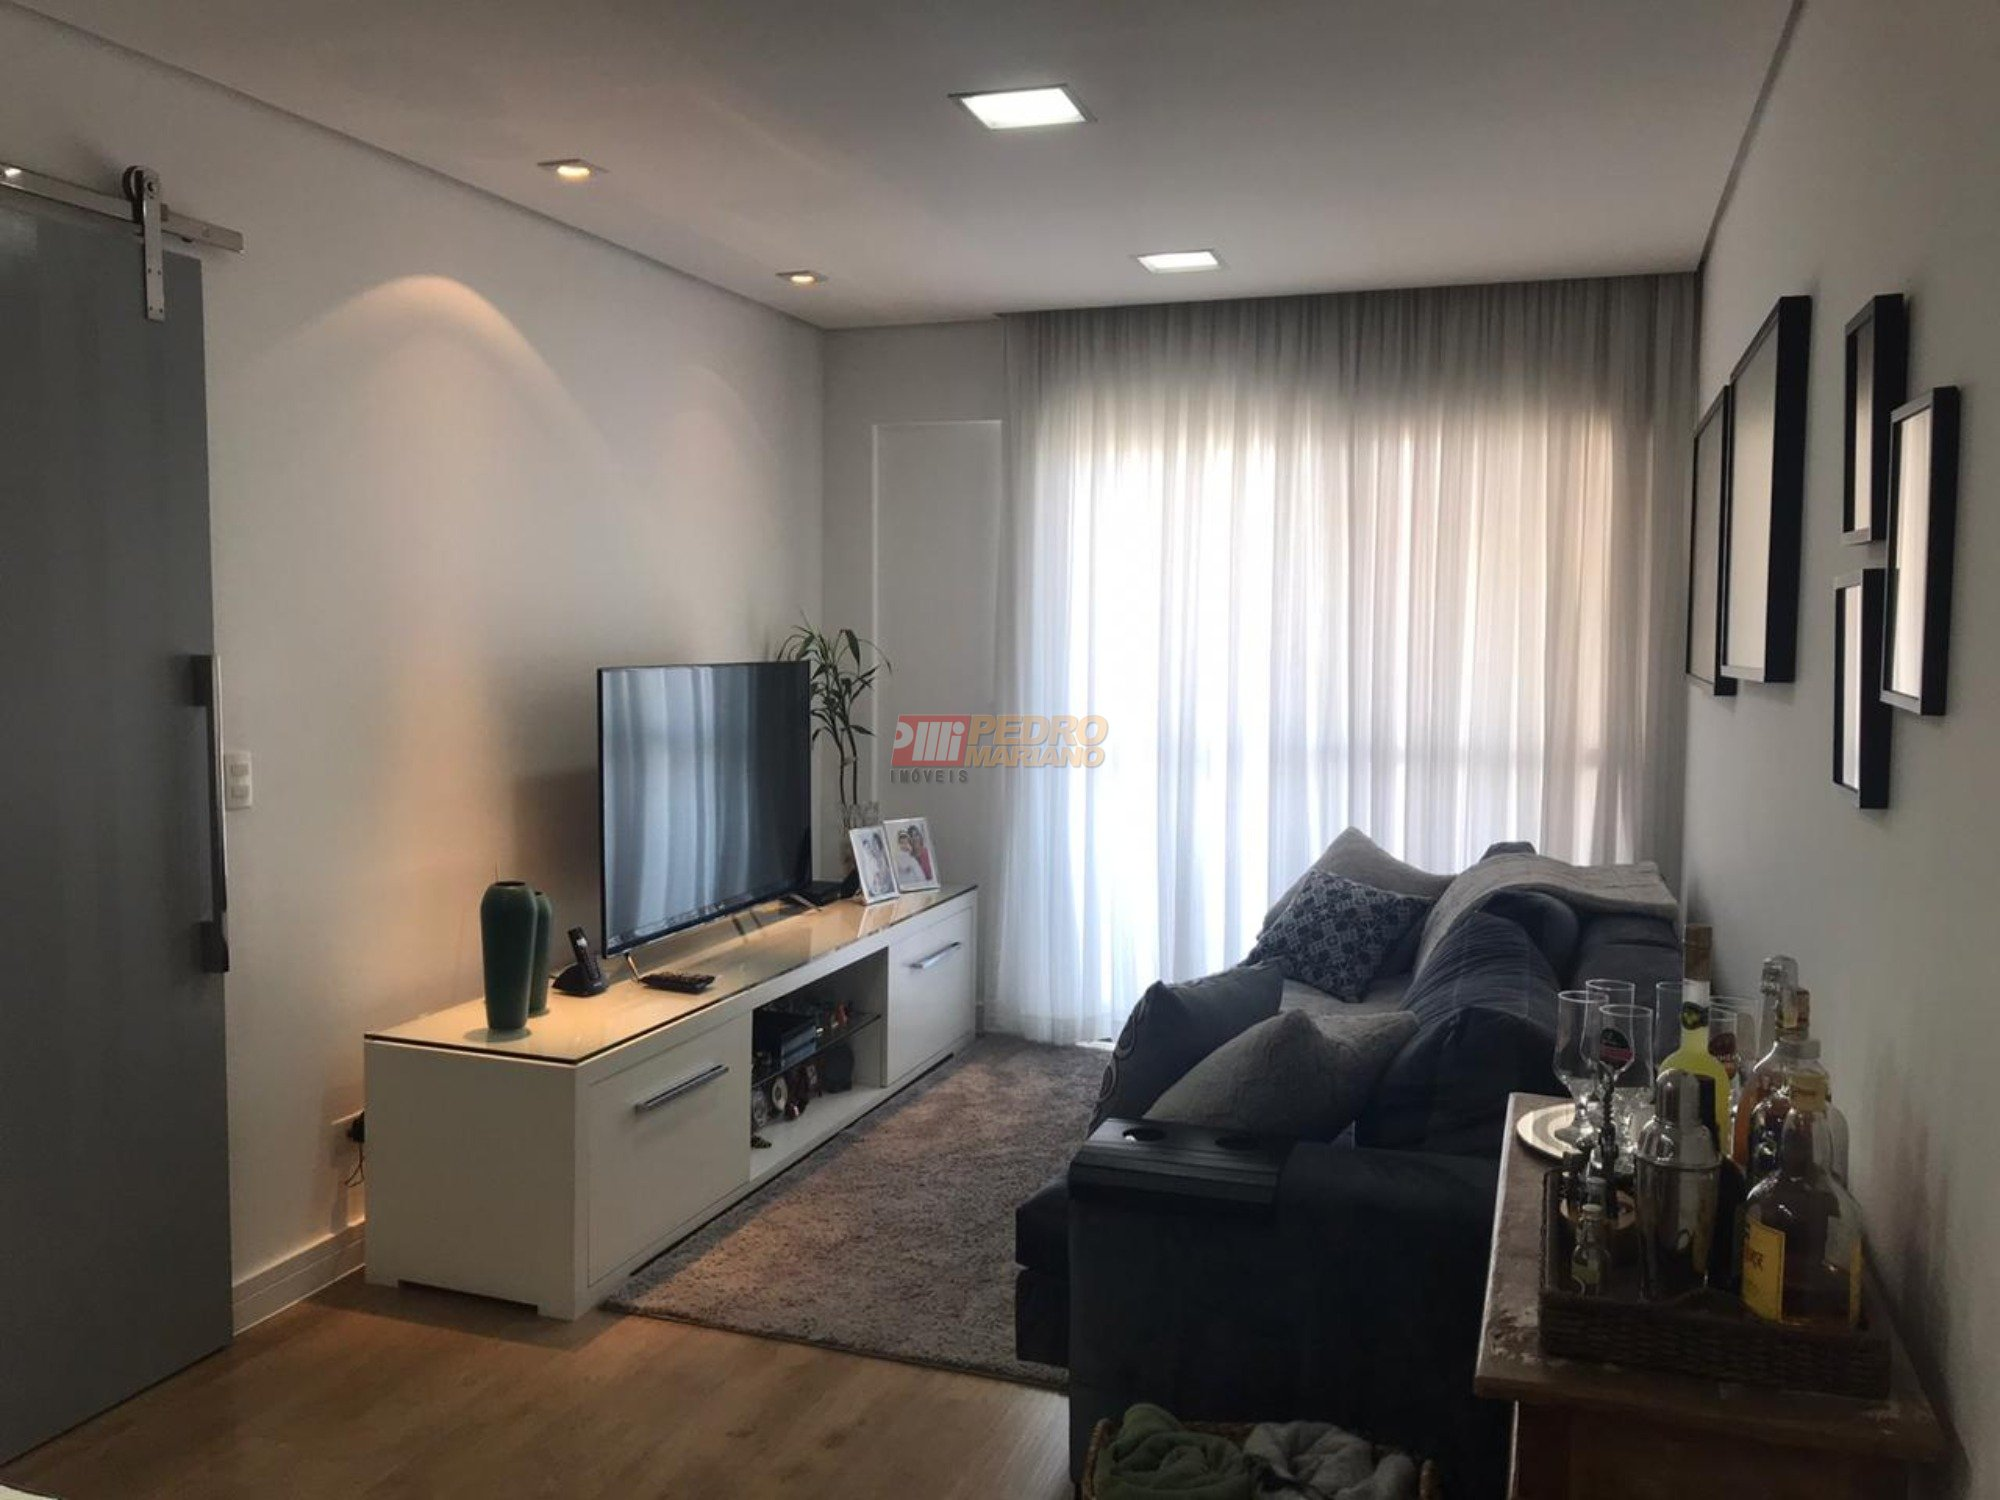 Apartamento Baeta Neves São Bernardo do Campo